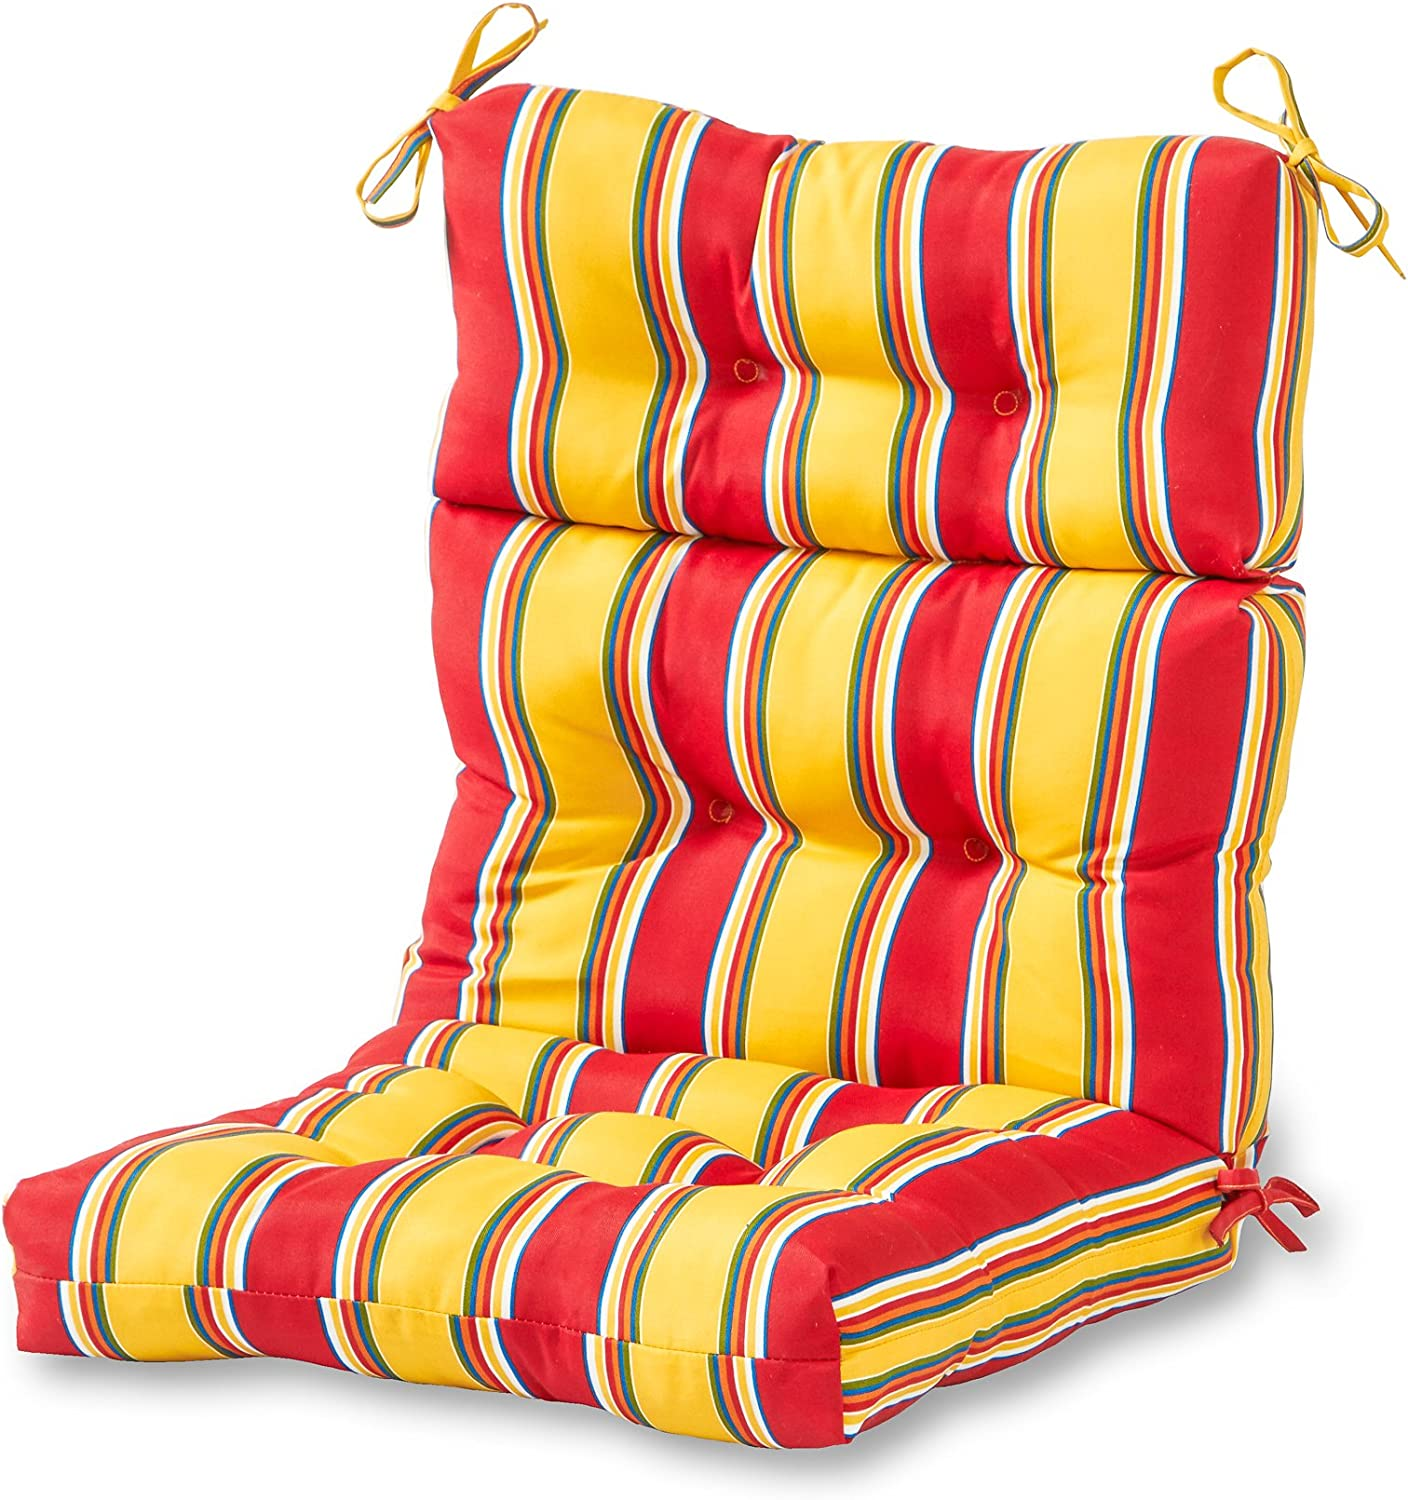 Greendale Home Fashions Outdoor High Back Chair Cushion, Carnival Stripe